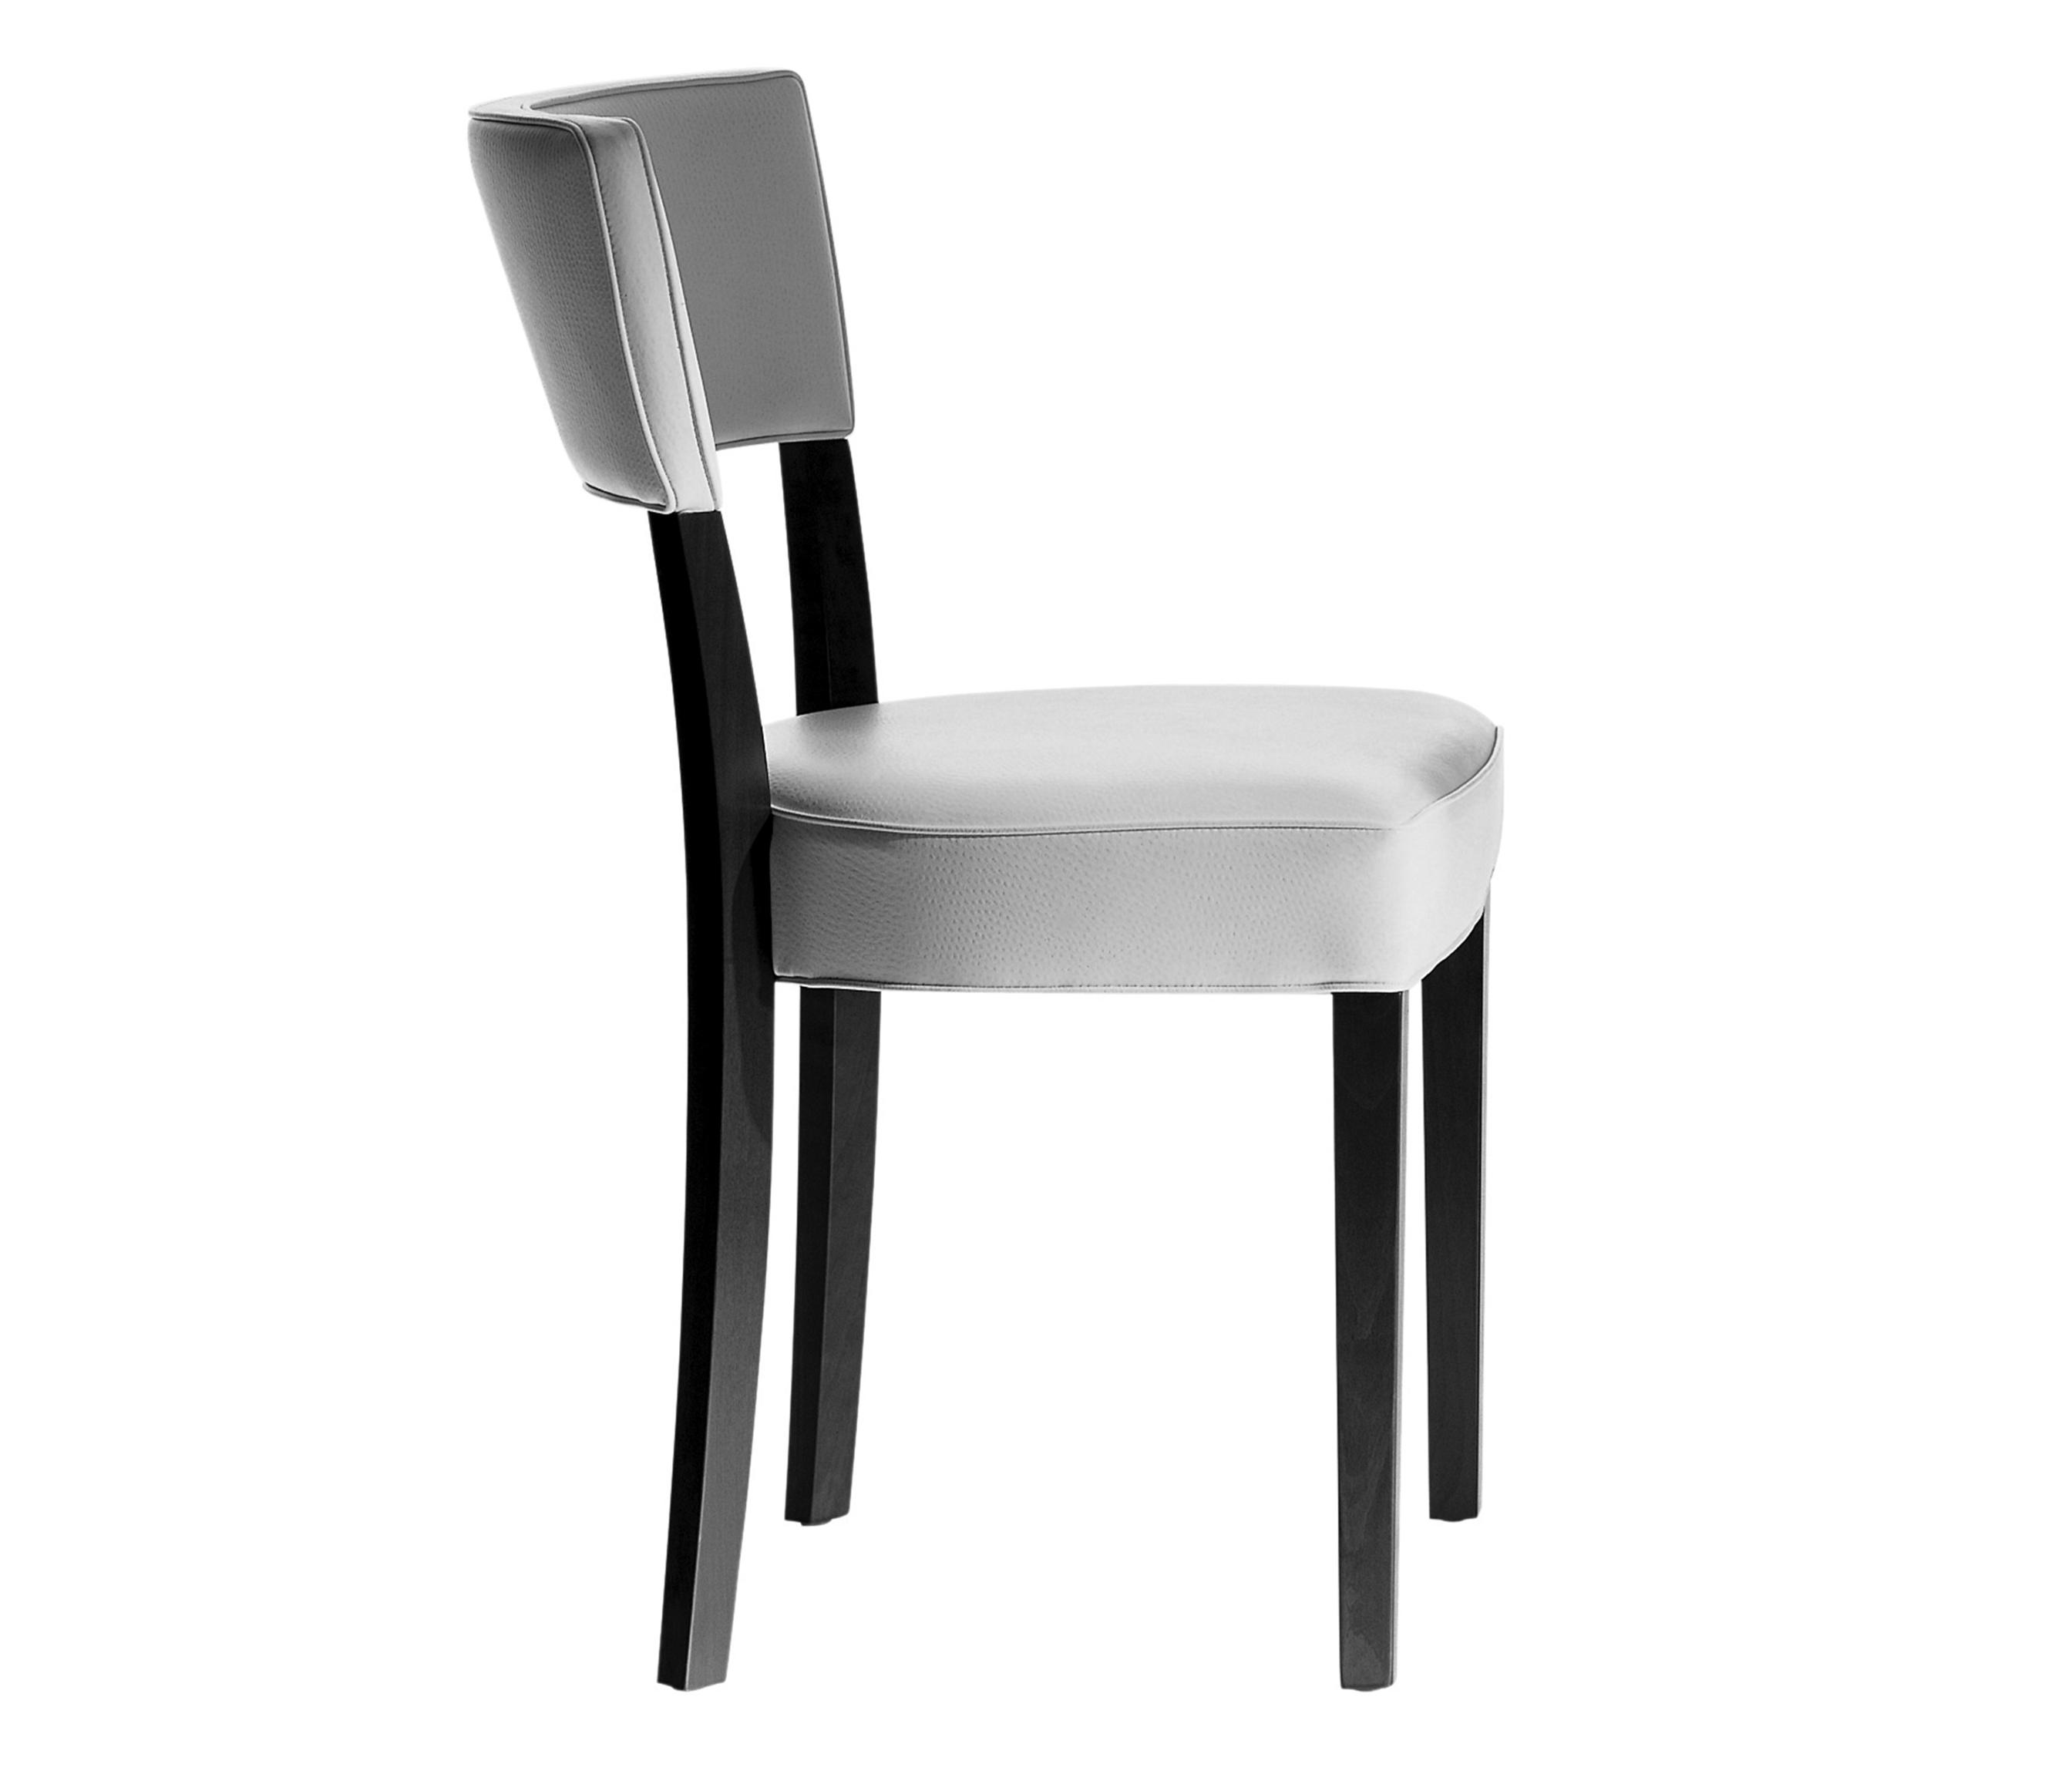 Chaise Starck Driade Neoz Chair Chairs From Driade Architonic